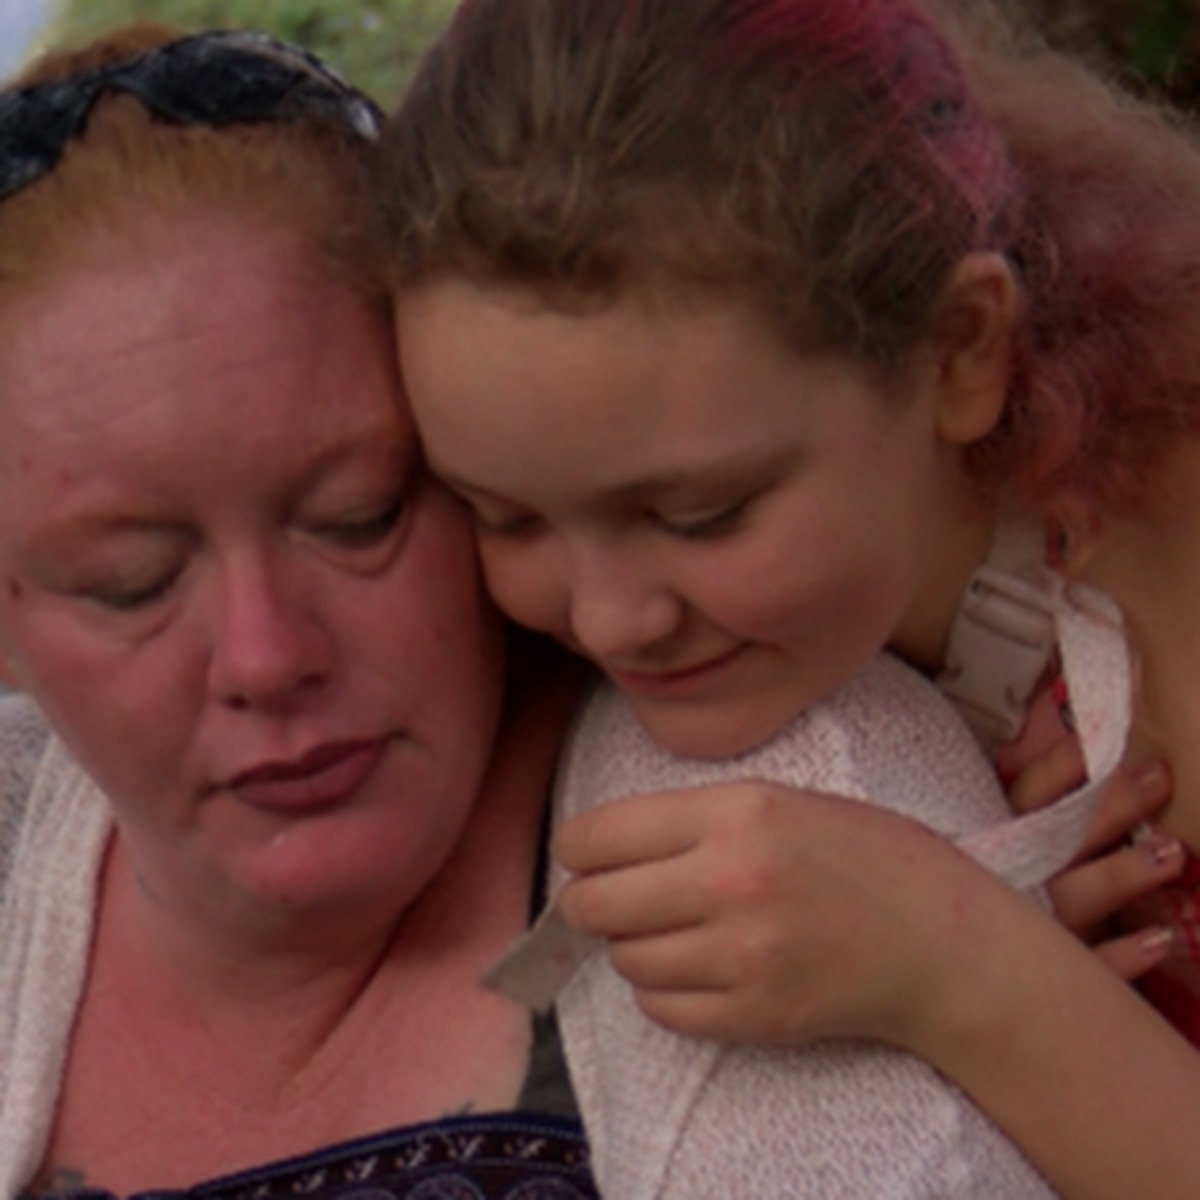 'How dare you?': Mom pleads for help in finding hit-and-run driver who hit her, her daughter